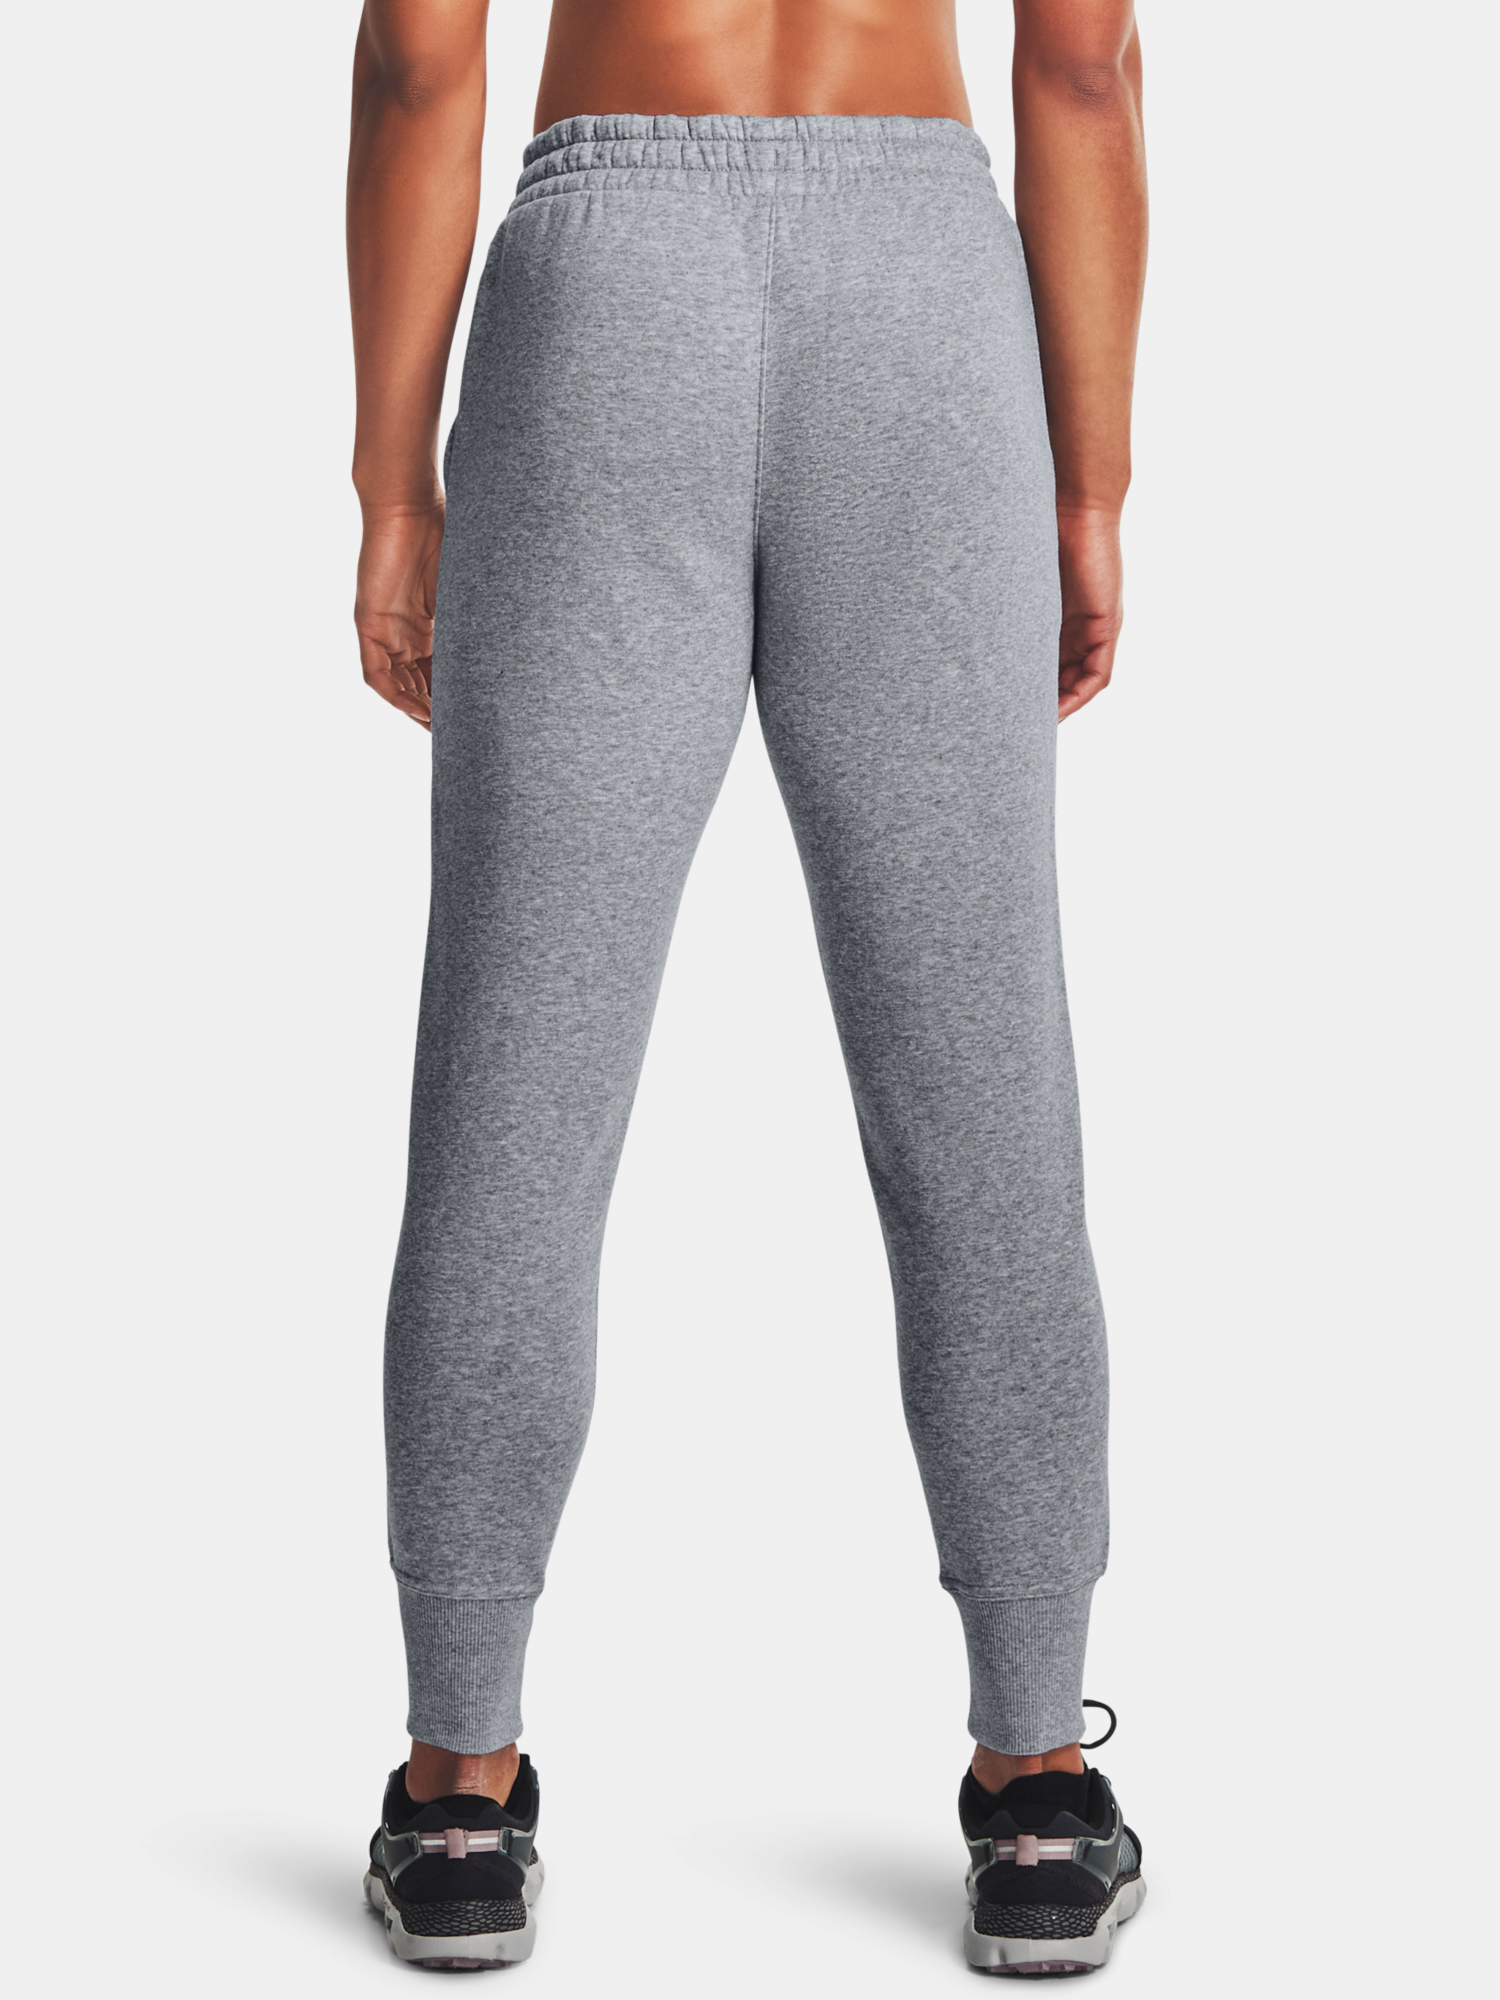 Kalhoty Under Armour Rival Fleece Pants-AMP-GRY (2)